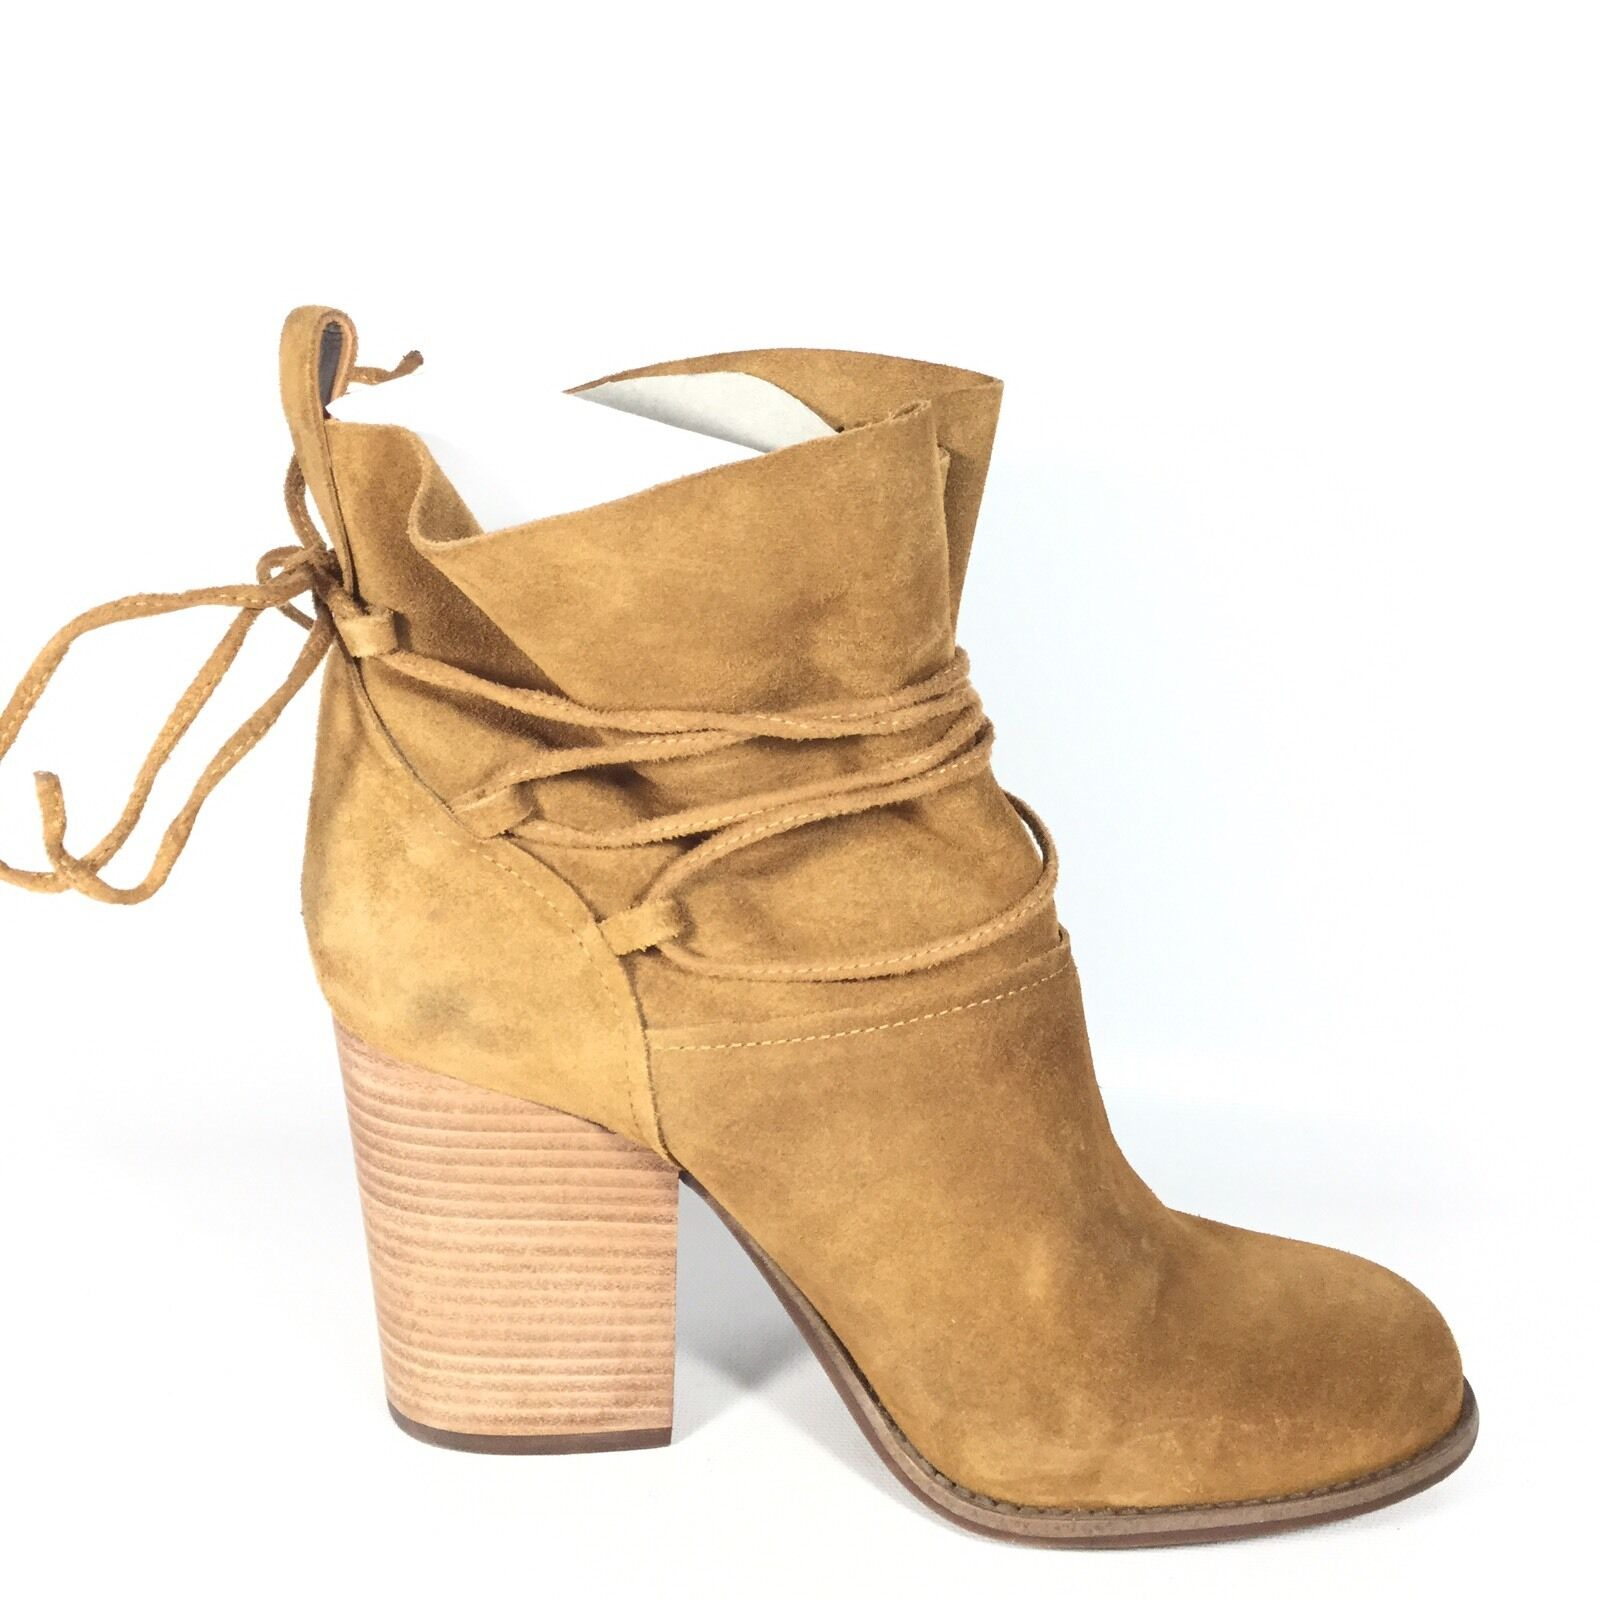 Jessica Simpson Satu Women's Size 9.5 M M M Brown Leather Heel Ankle Boots. 8e1ca8